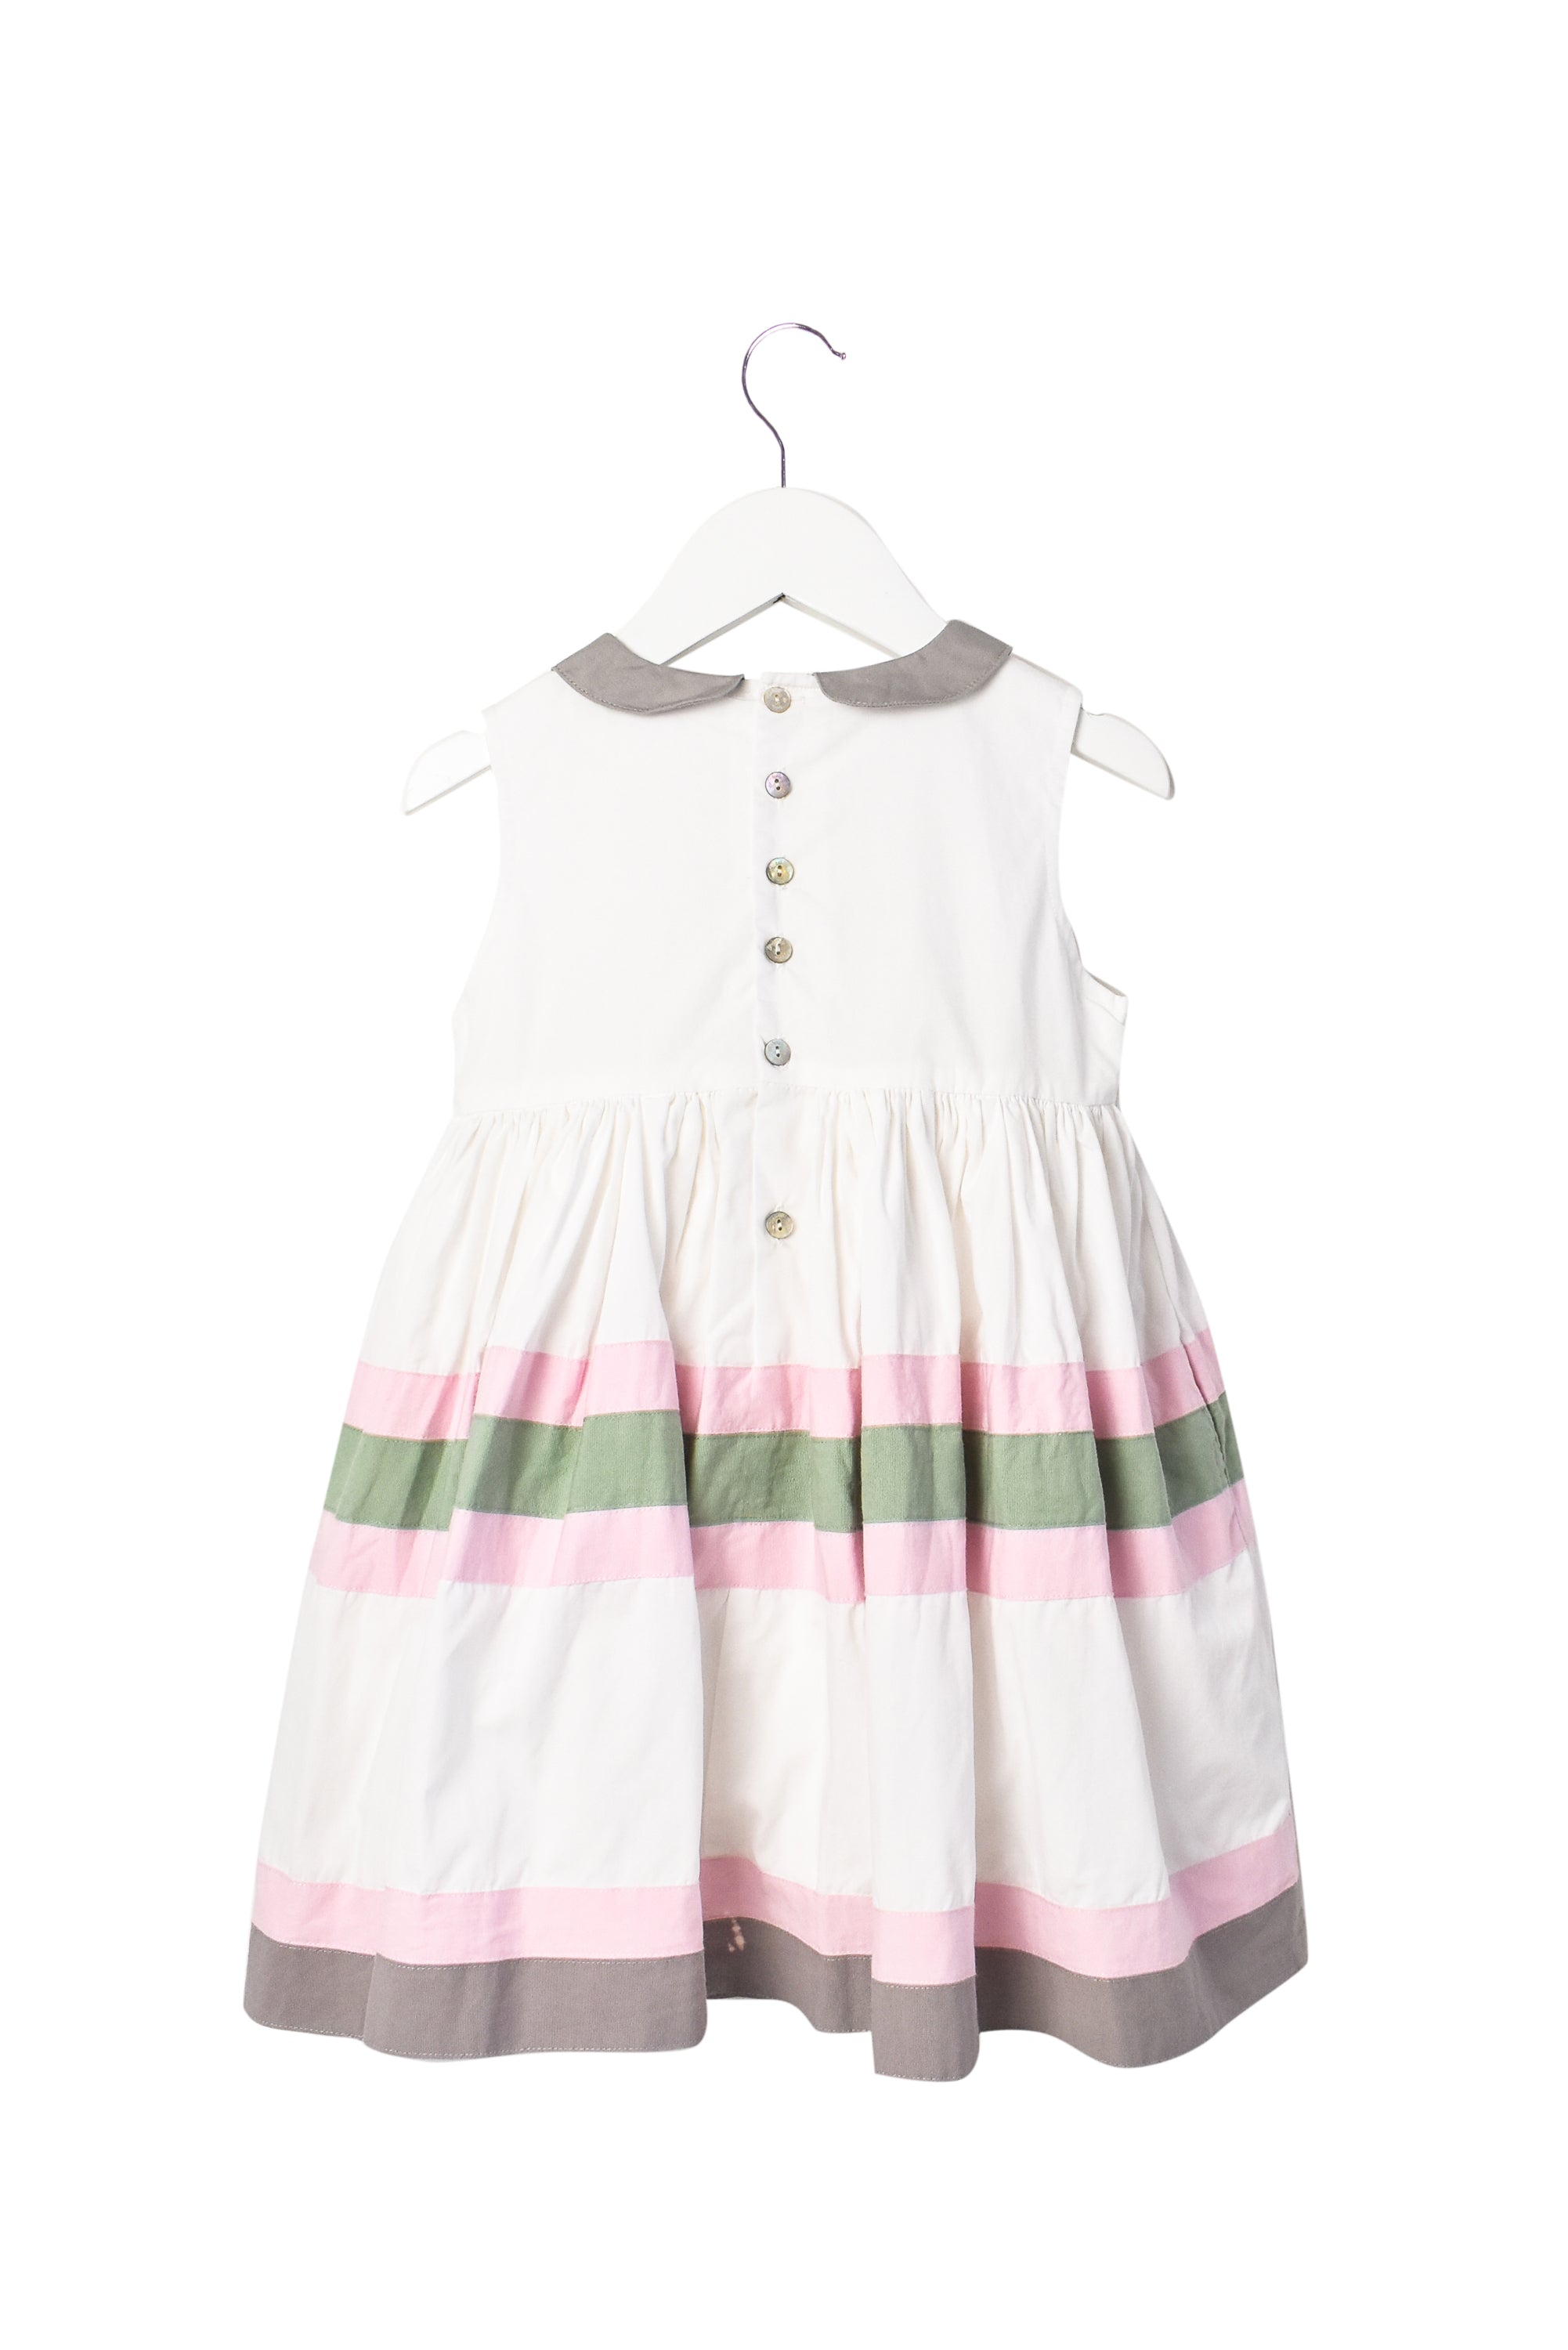 10006279 Chateau de Sable Kids~Dress 4T at Retykle